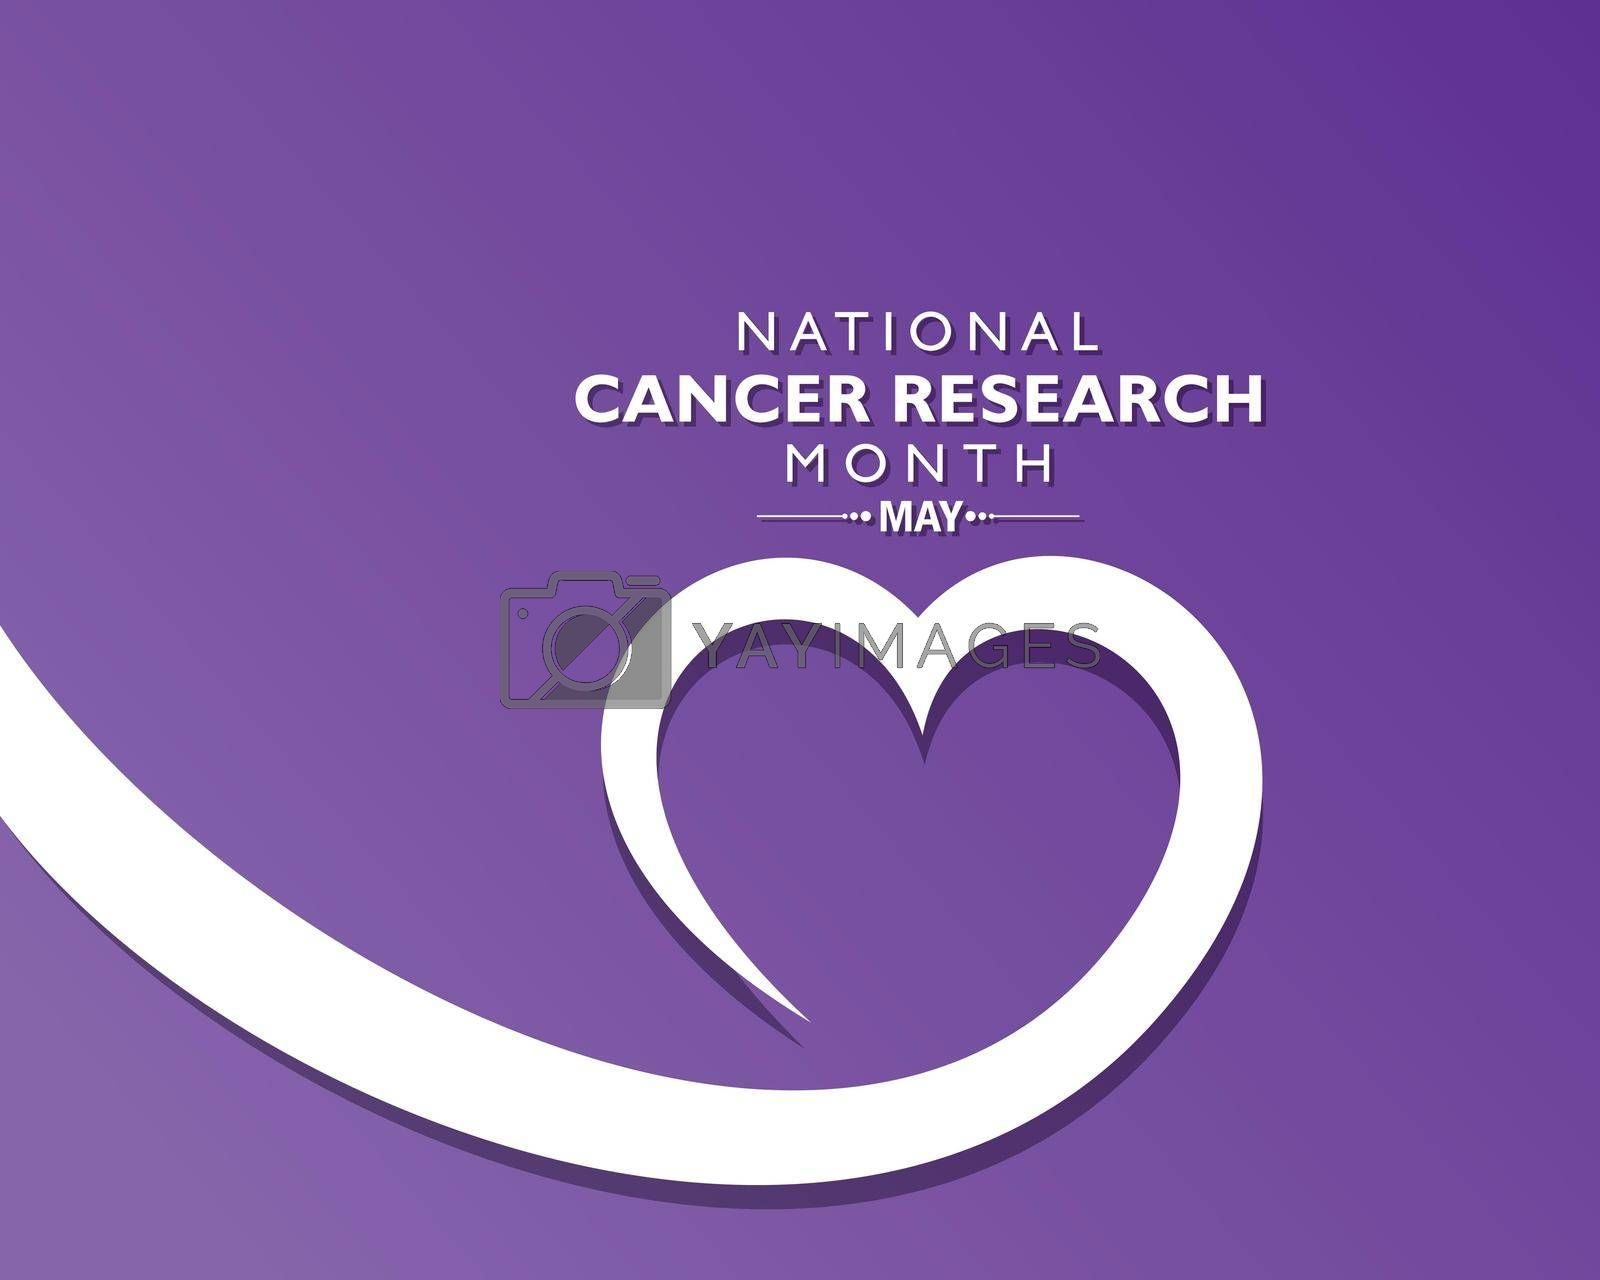 Royalty free image of Vector Illustration of National Cancer Research Month observed in May. by graphicsdunia4you